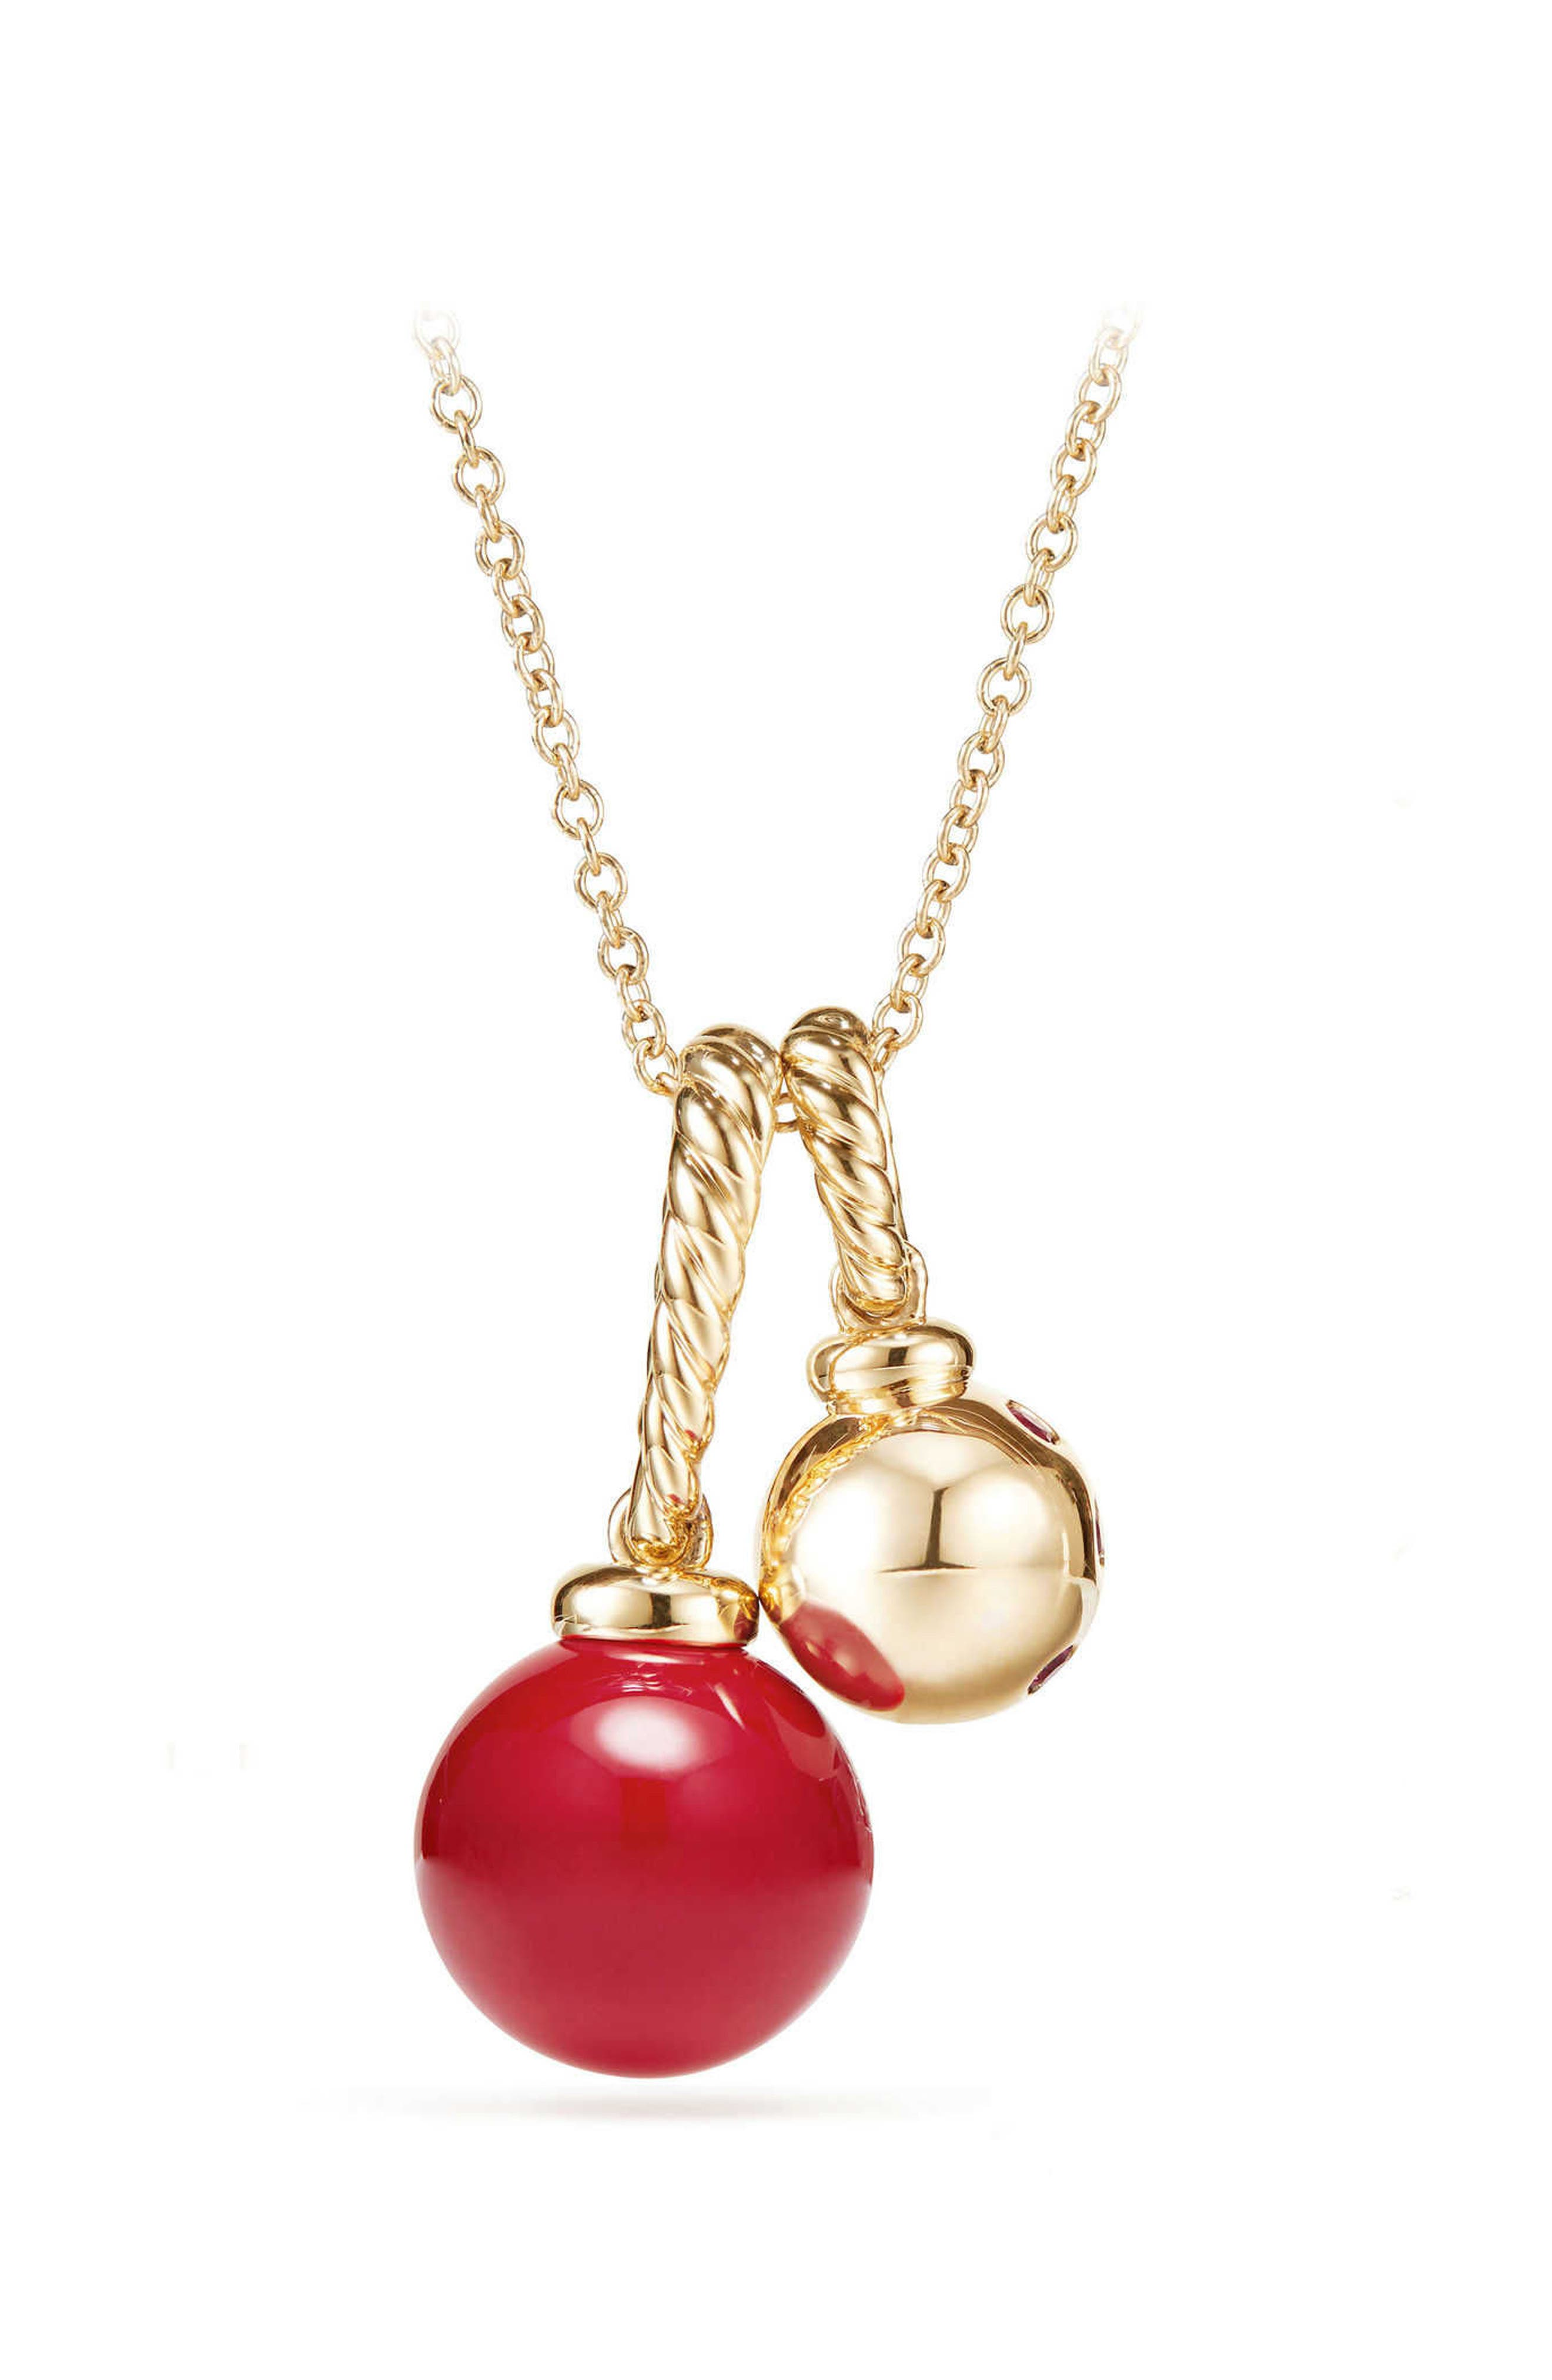 Solari Pendant Necklace in 18K Gold with Cherry Amber,                         Main,                         color, YELLOW GOLD/ RED